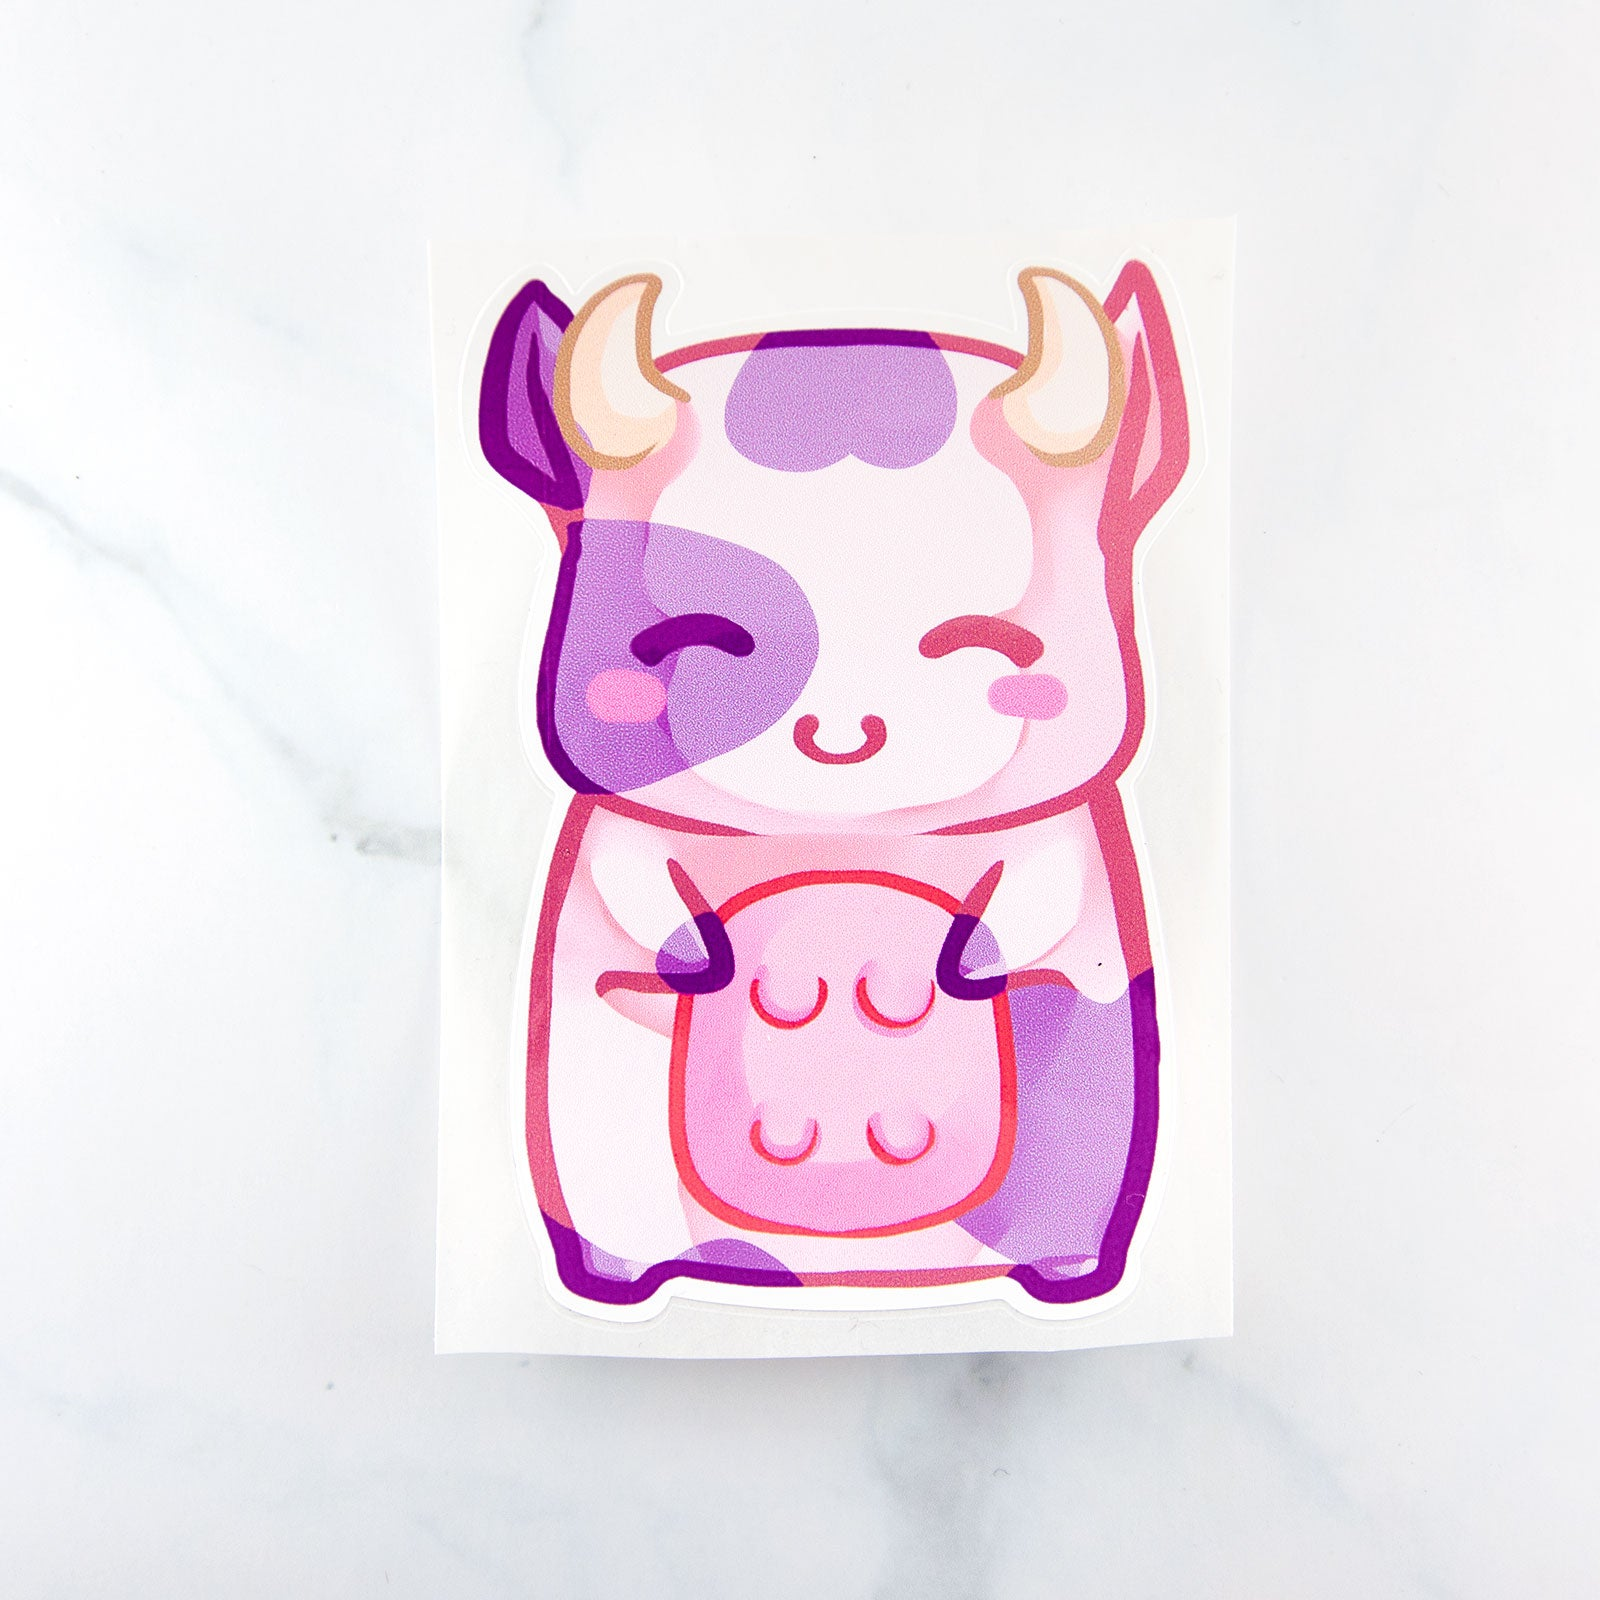 Cute anime pastel pink manga cow sticker - MadModesty